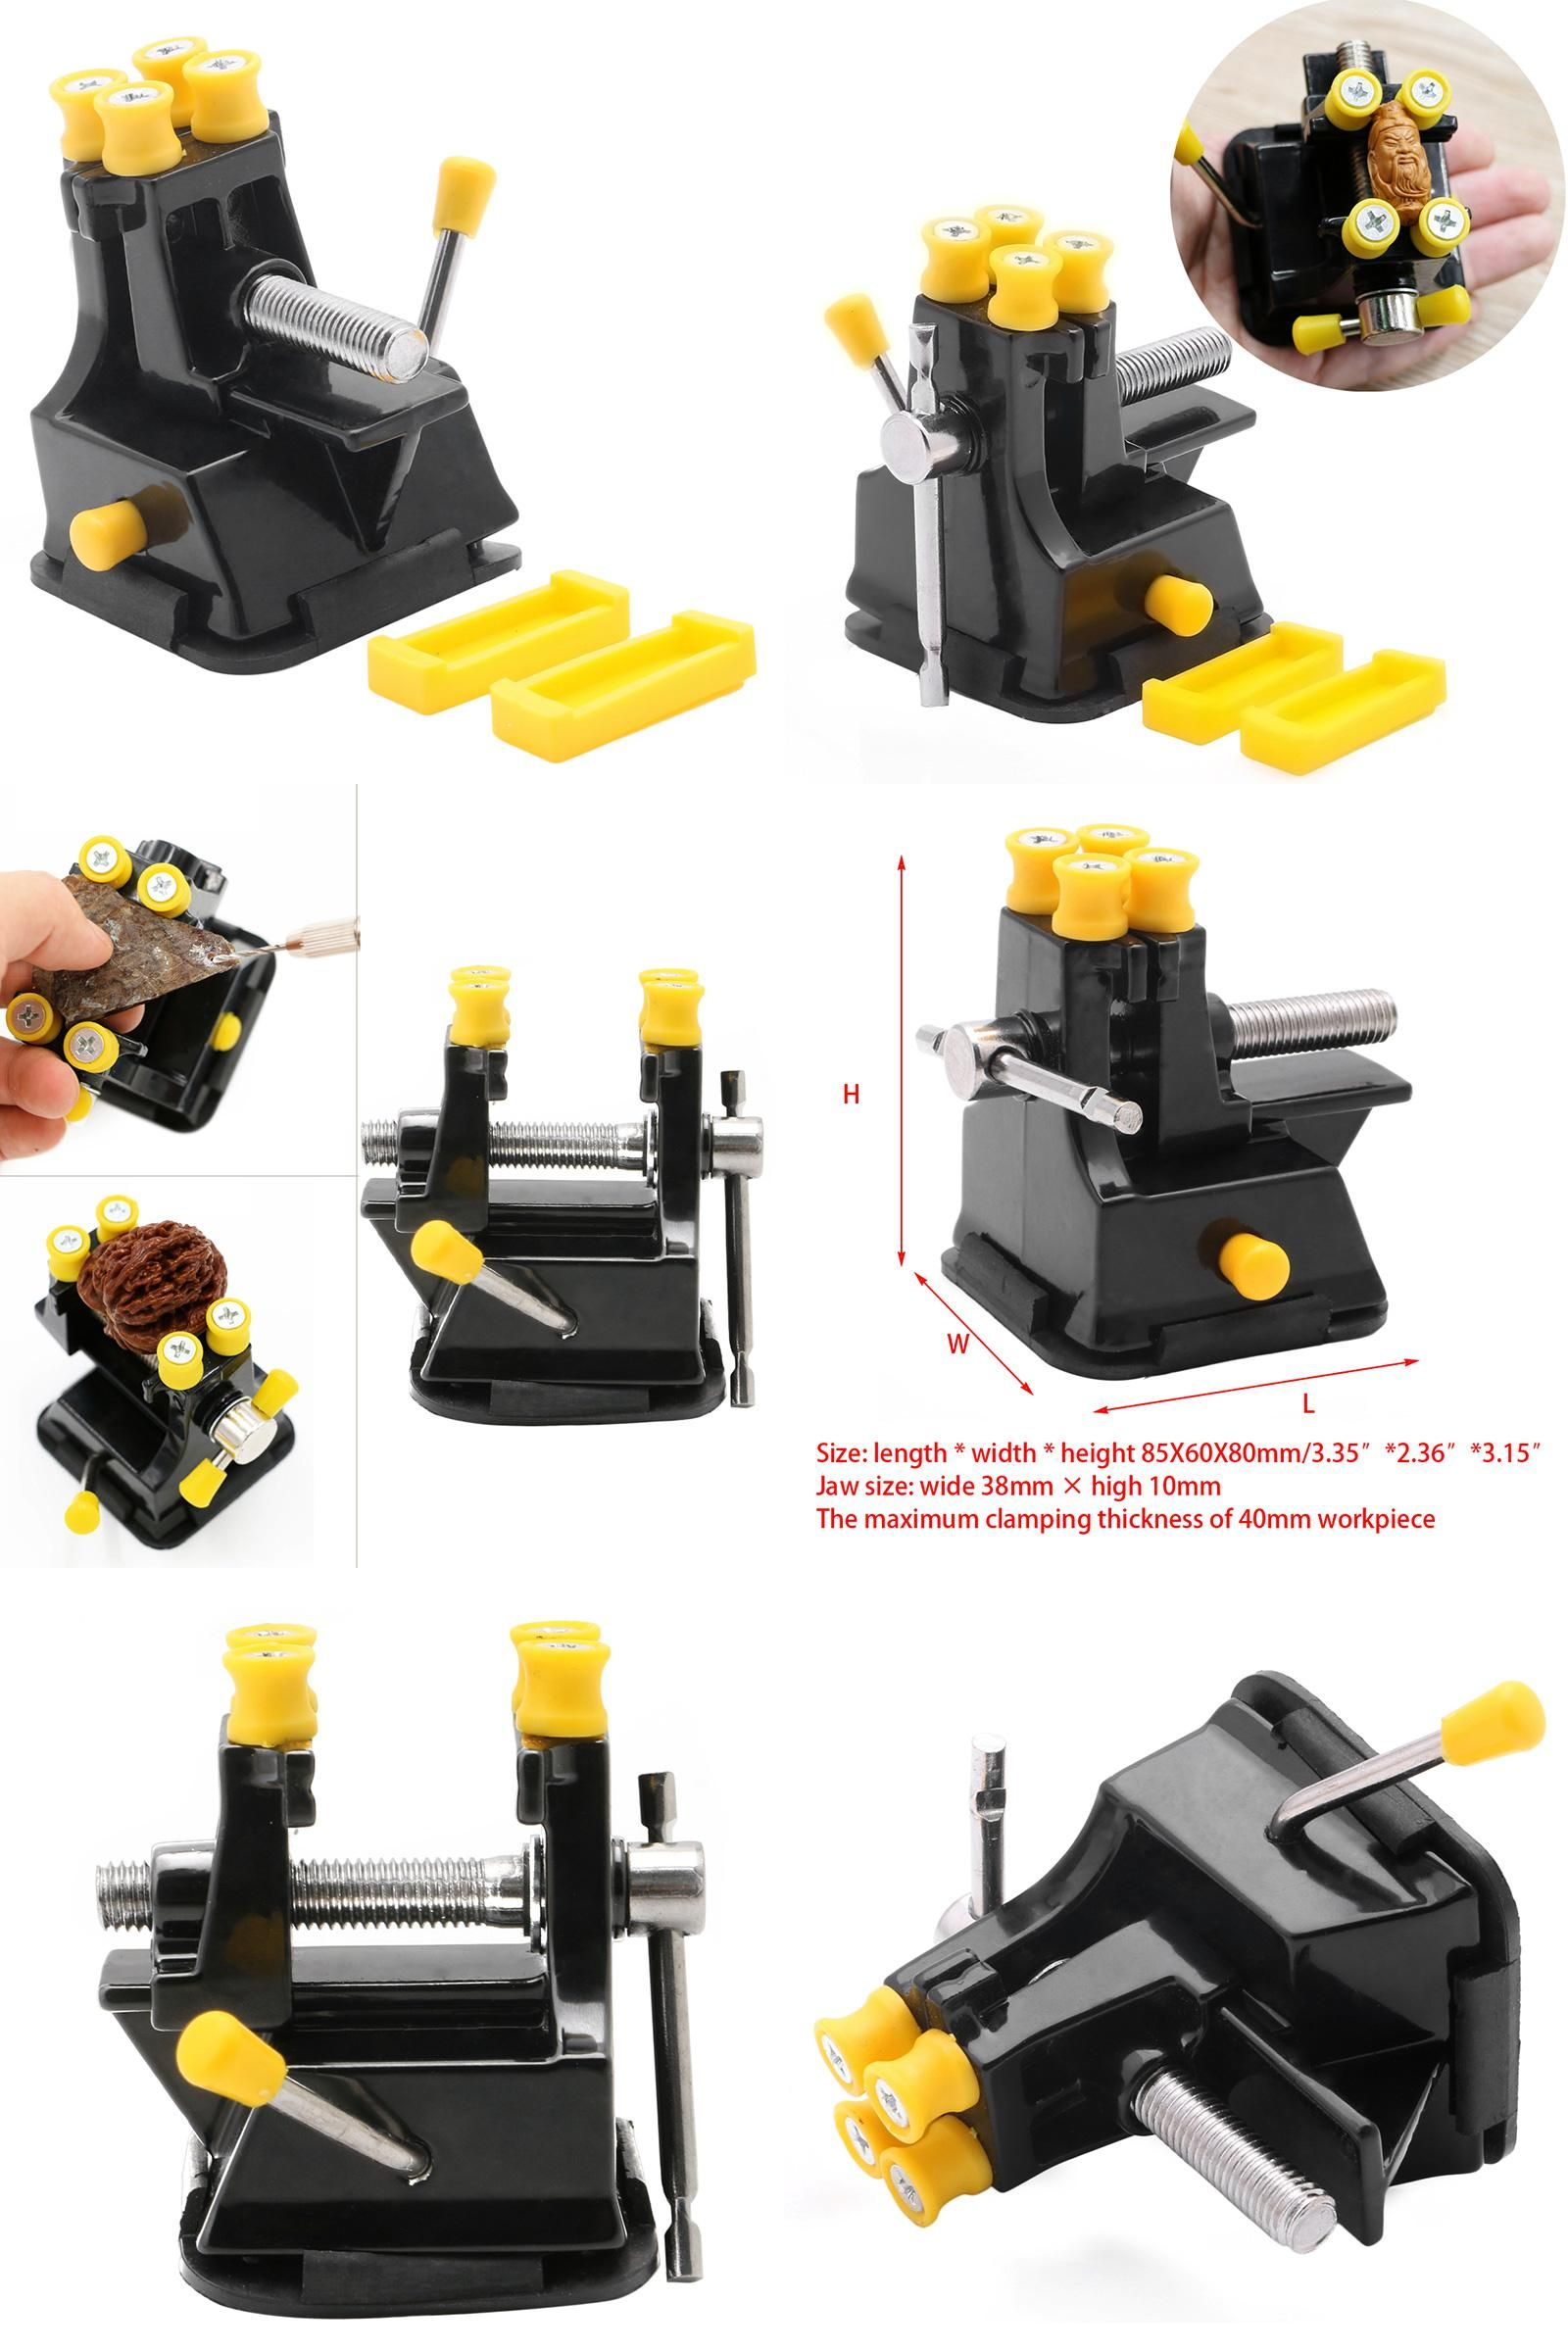 Mould Clamp Bench Suction Hand Tool Fixed Tool Grip Vise Jewelry Repair Tool